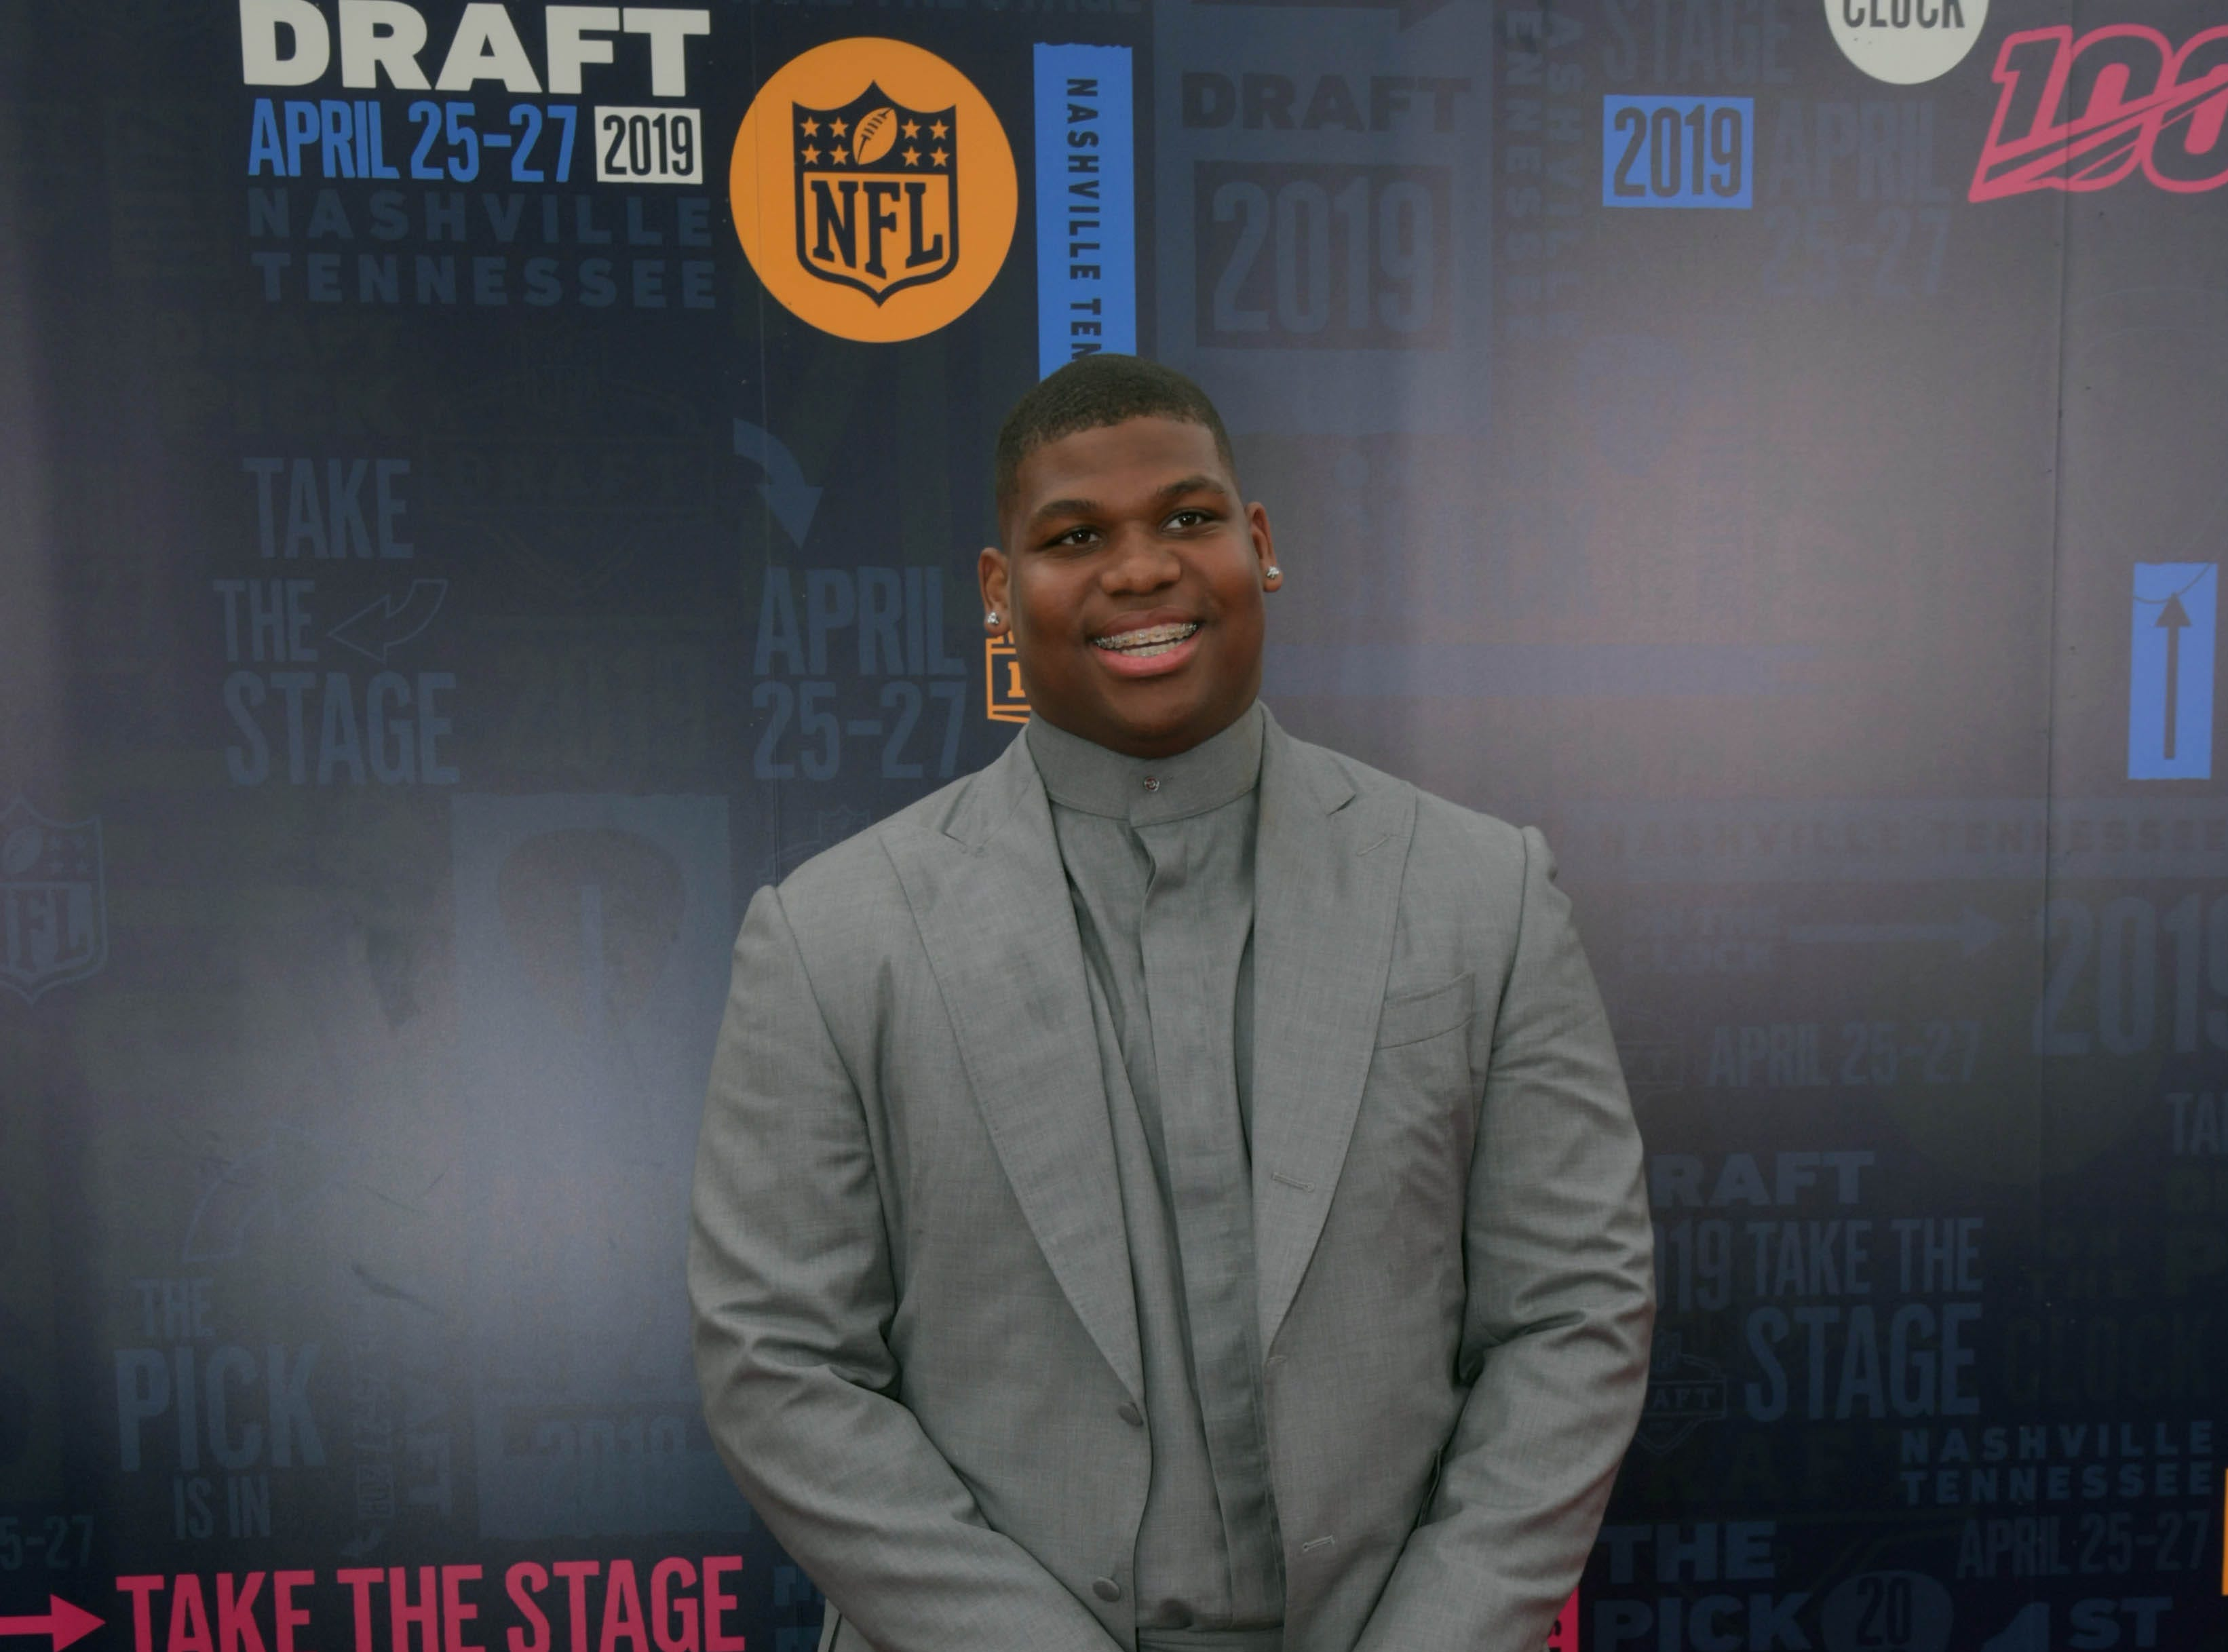 Apr 25, 2019; Nashville, TN, USA; Quinnen Williams (Alabama) on the red carpet prior to the first round of the 2019 NFL Draft in Downtown Nashville. Mandatory Credit: Kirby Lee-USA TODAY Sports